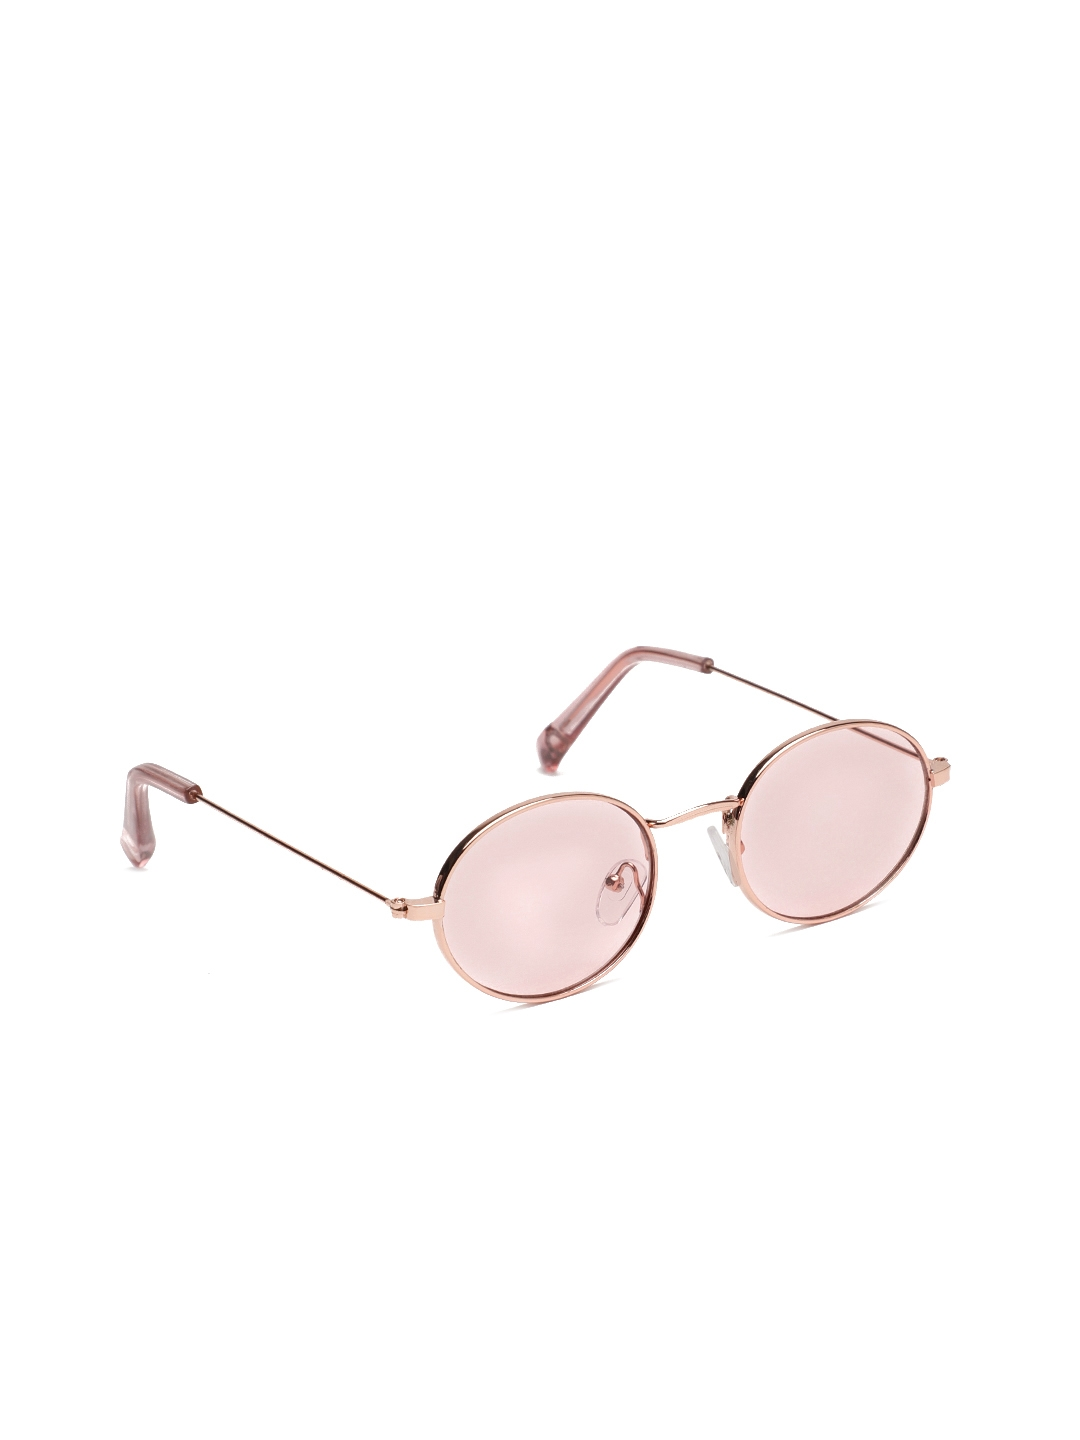 c95cf10990 Buy AMERICAN EAGLE OUTFITTERS Women Oval Sunglasses 8294 ...